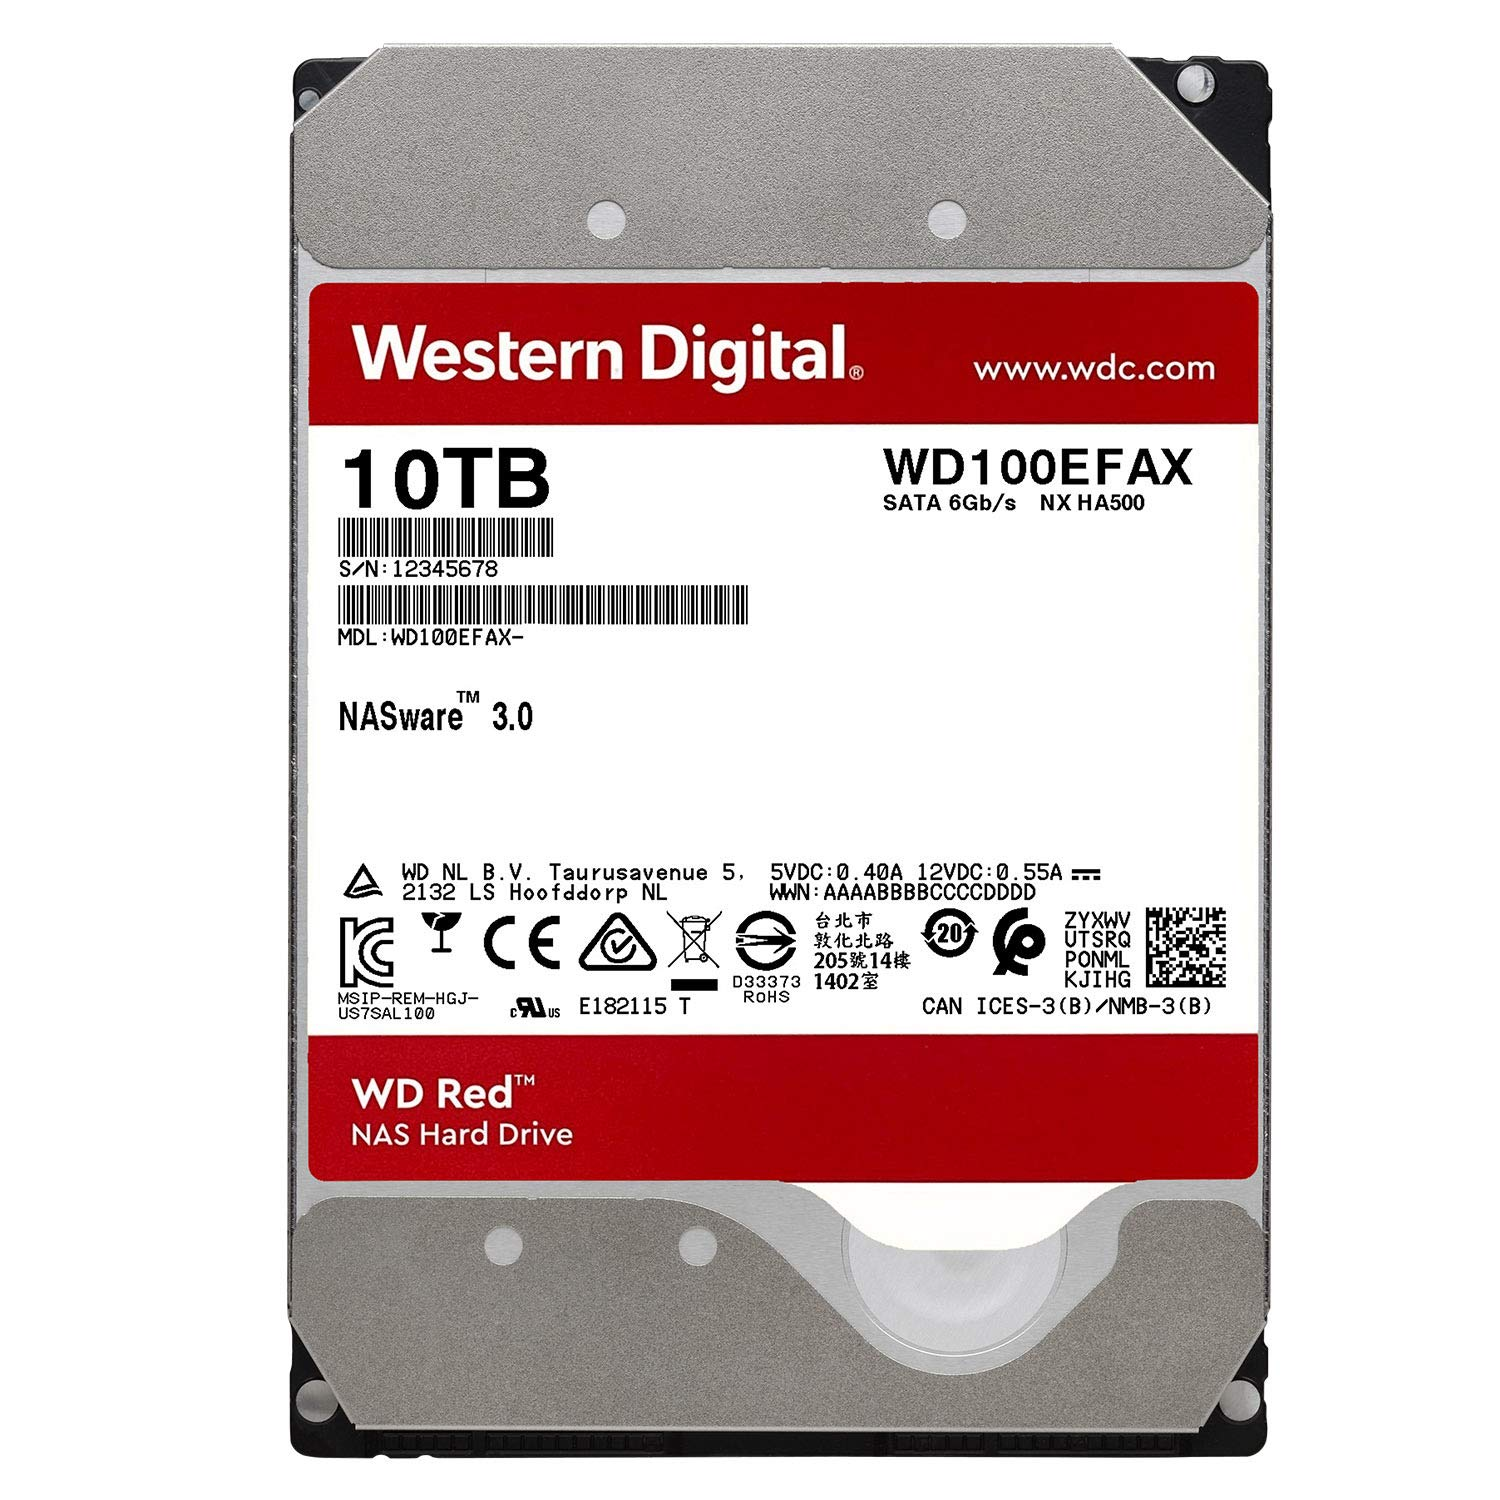 Western Digital Wd101efax Wd Red Plus 3 5 Nas Hard Disk Drive 10tb 5400 Rpm 256mb Cache Amazon Sg Electronics